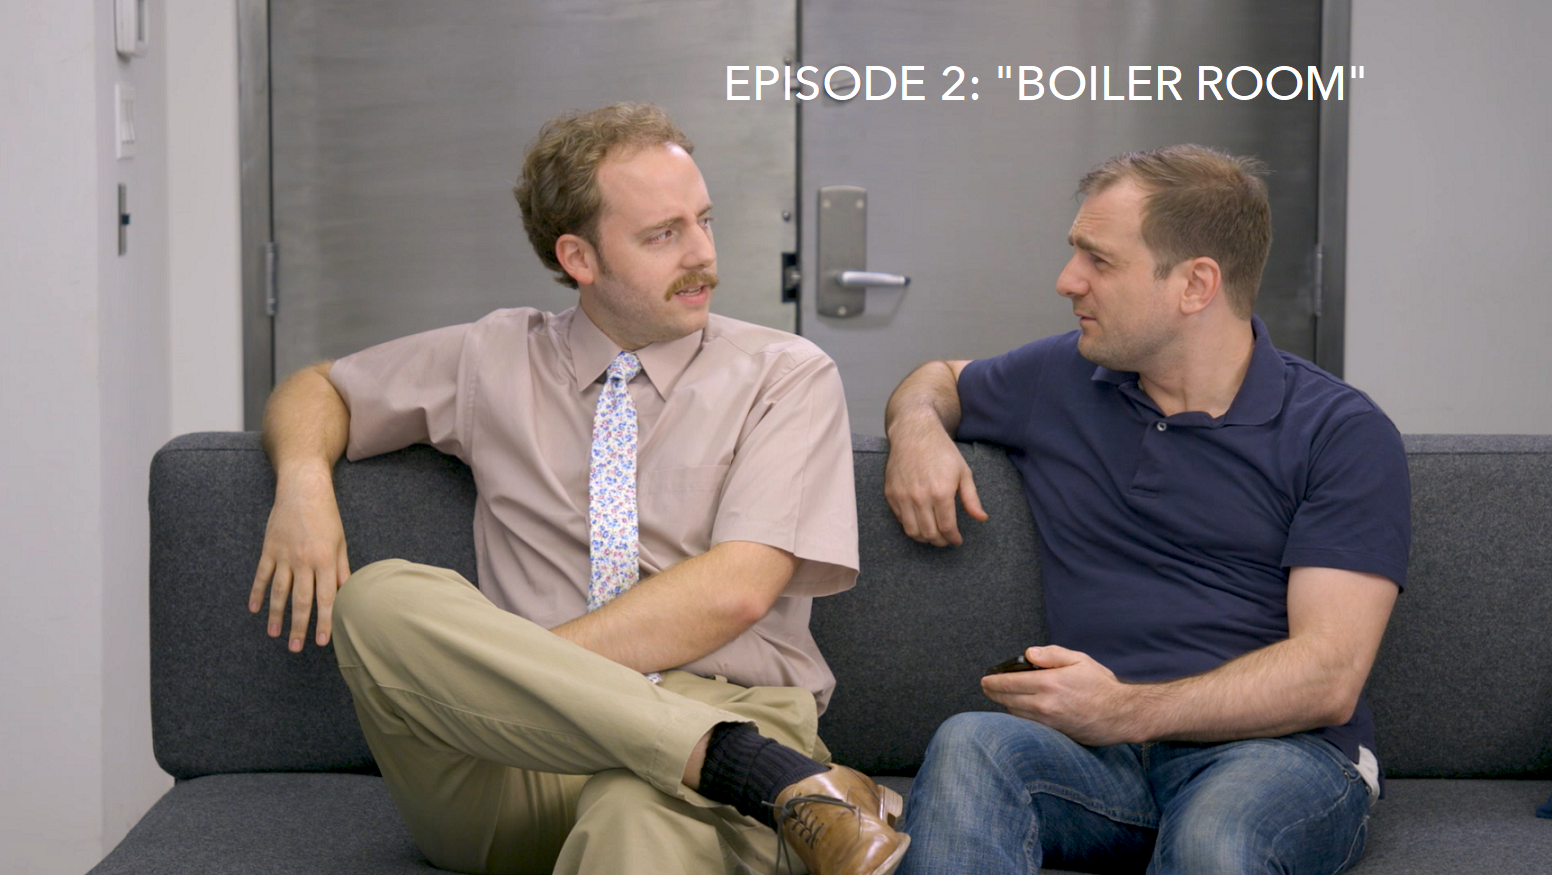 Boiler Room Thumbnail w text.png